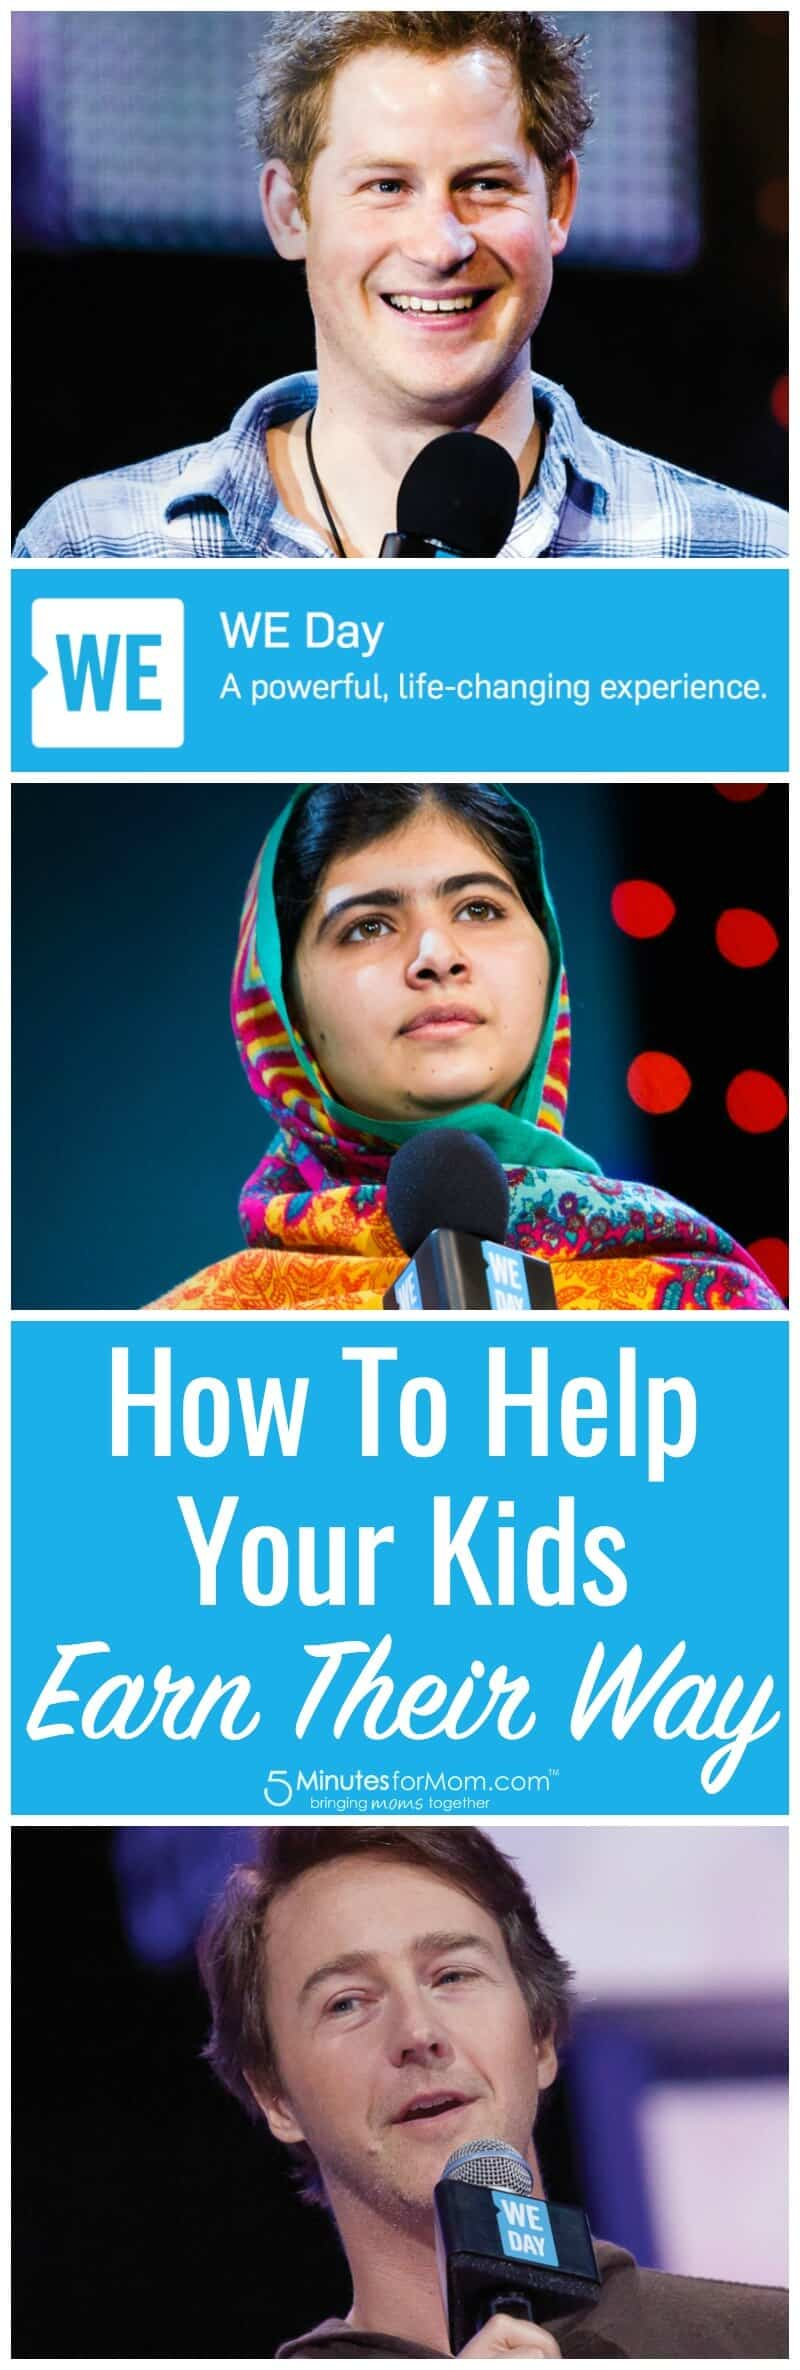 WE Day - How To Help Your Kids Earn Their Way